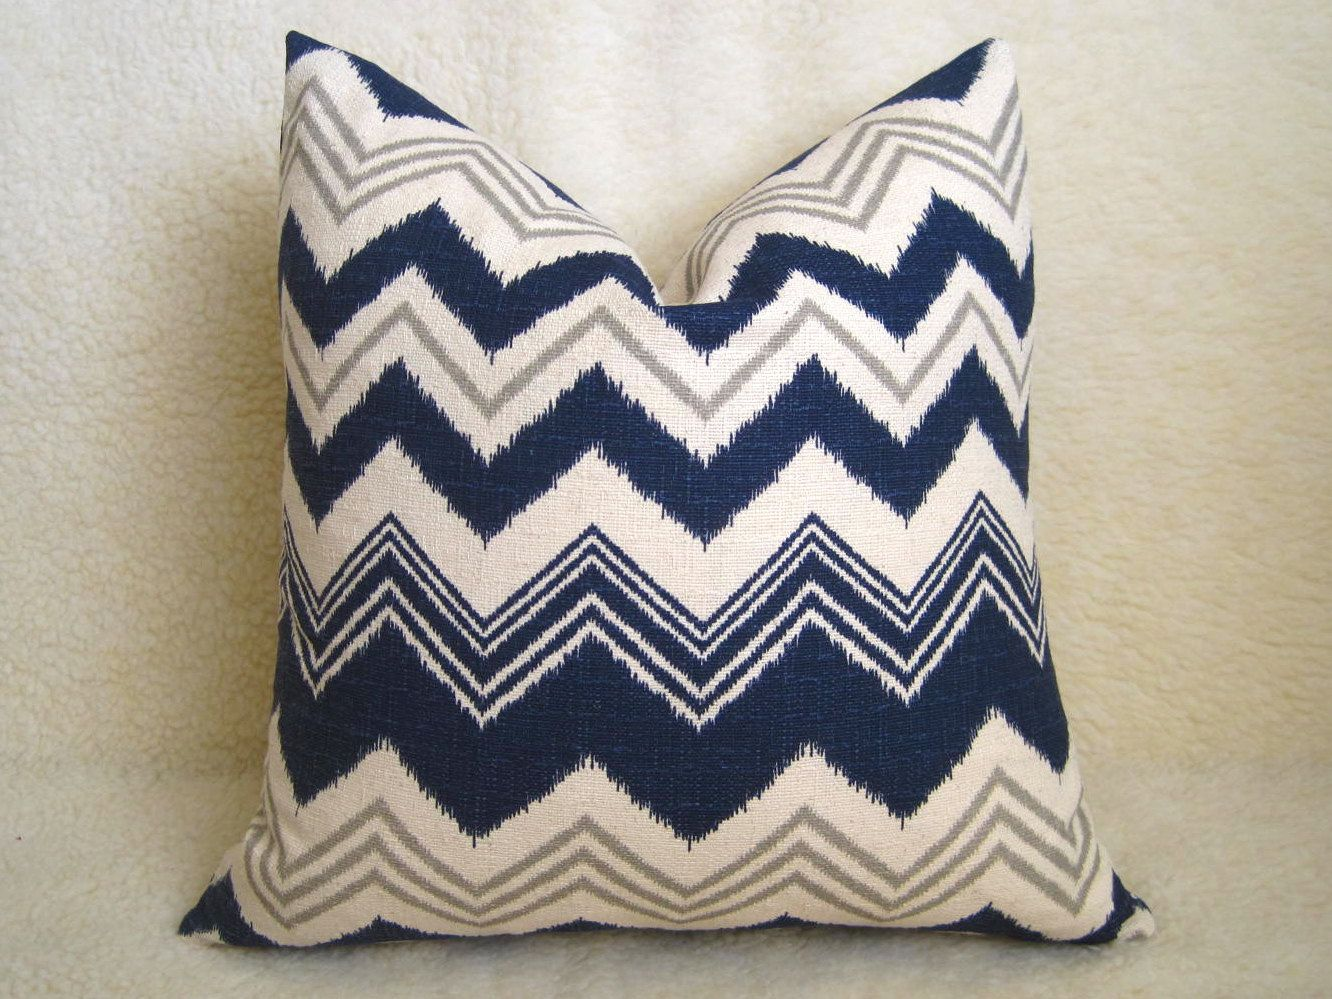 velvet ivory pillow decorative pillows listing fullxfull all zoom applique geometric gift blue decor pattern contemporary linen navy throw sizes il cover